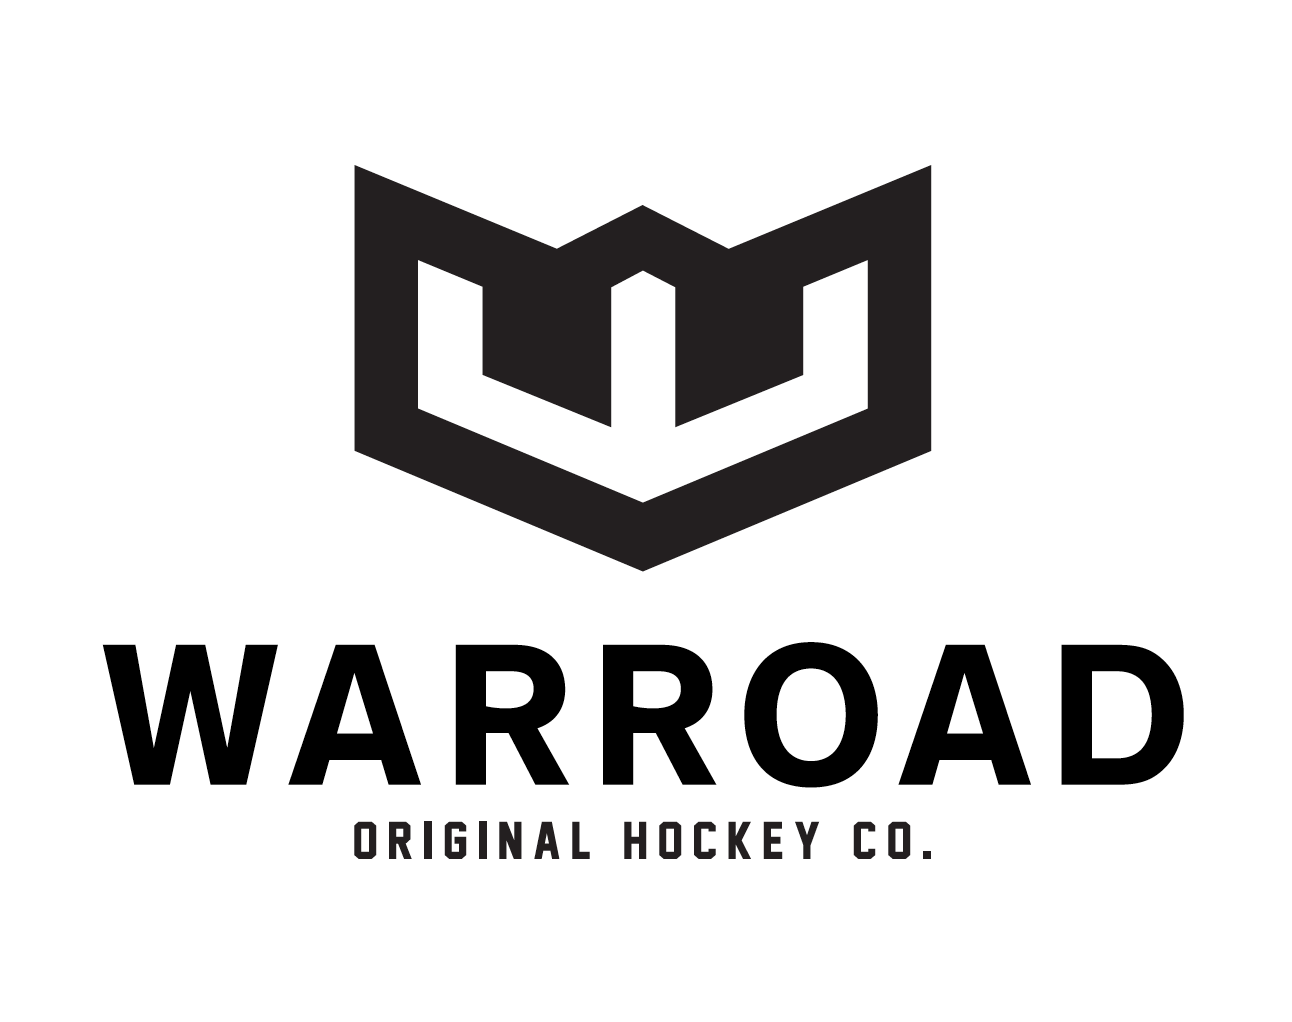 Warroad Original Hockey Co.